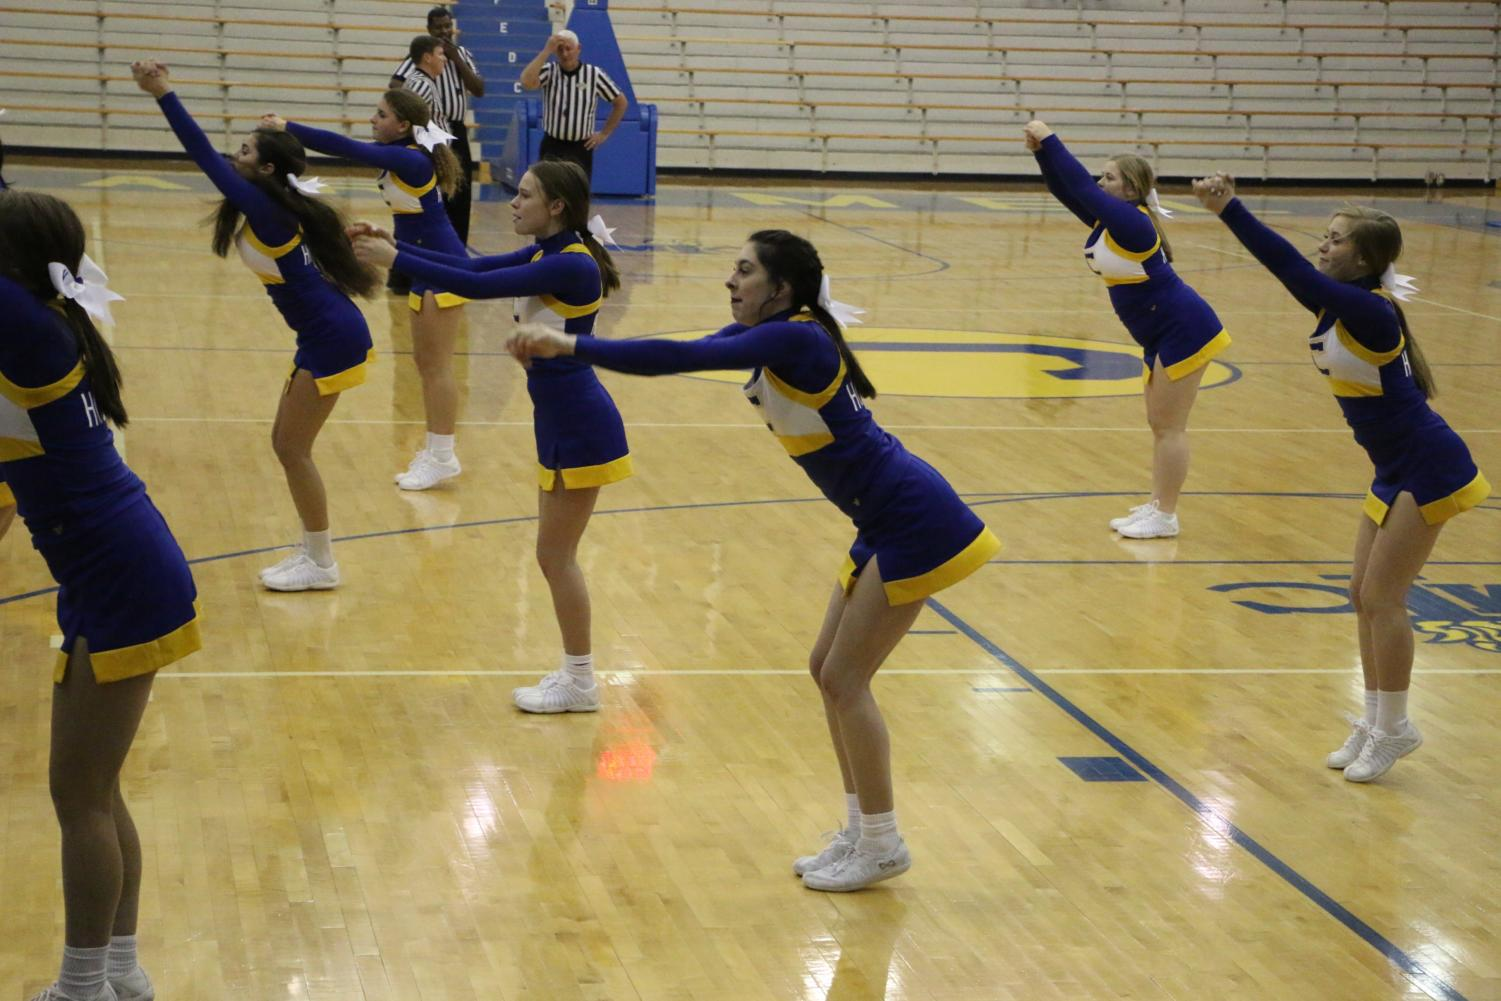 Winter Cheerleading team performs a cheer with various stunts at a women's basketball game. The cheerleaders performed this cheer during a time out to encourage the fans to cheer and because they were able to do stunts on the court.